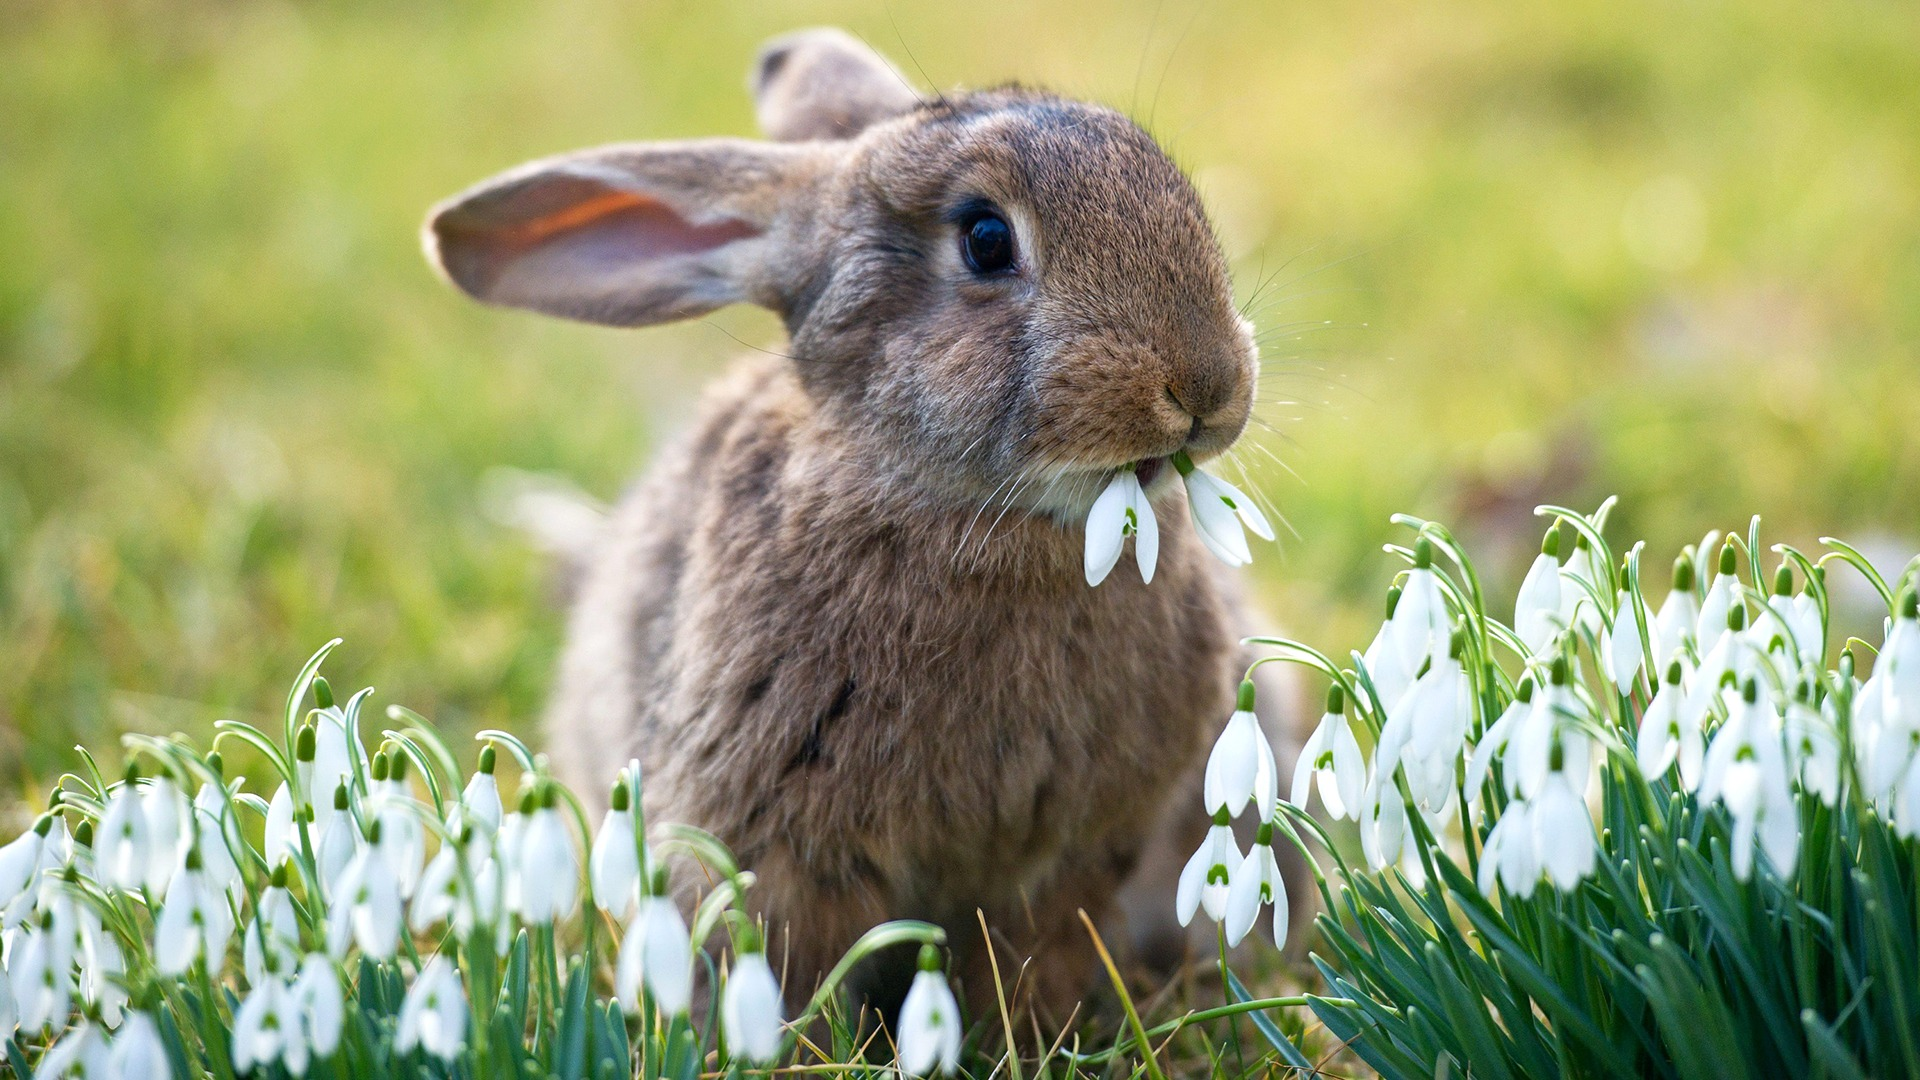 Image: Rabbit eats snodrops